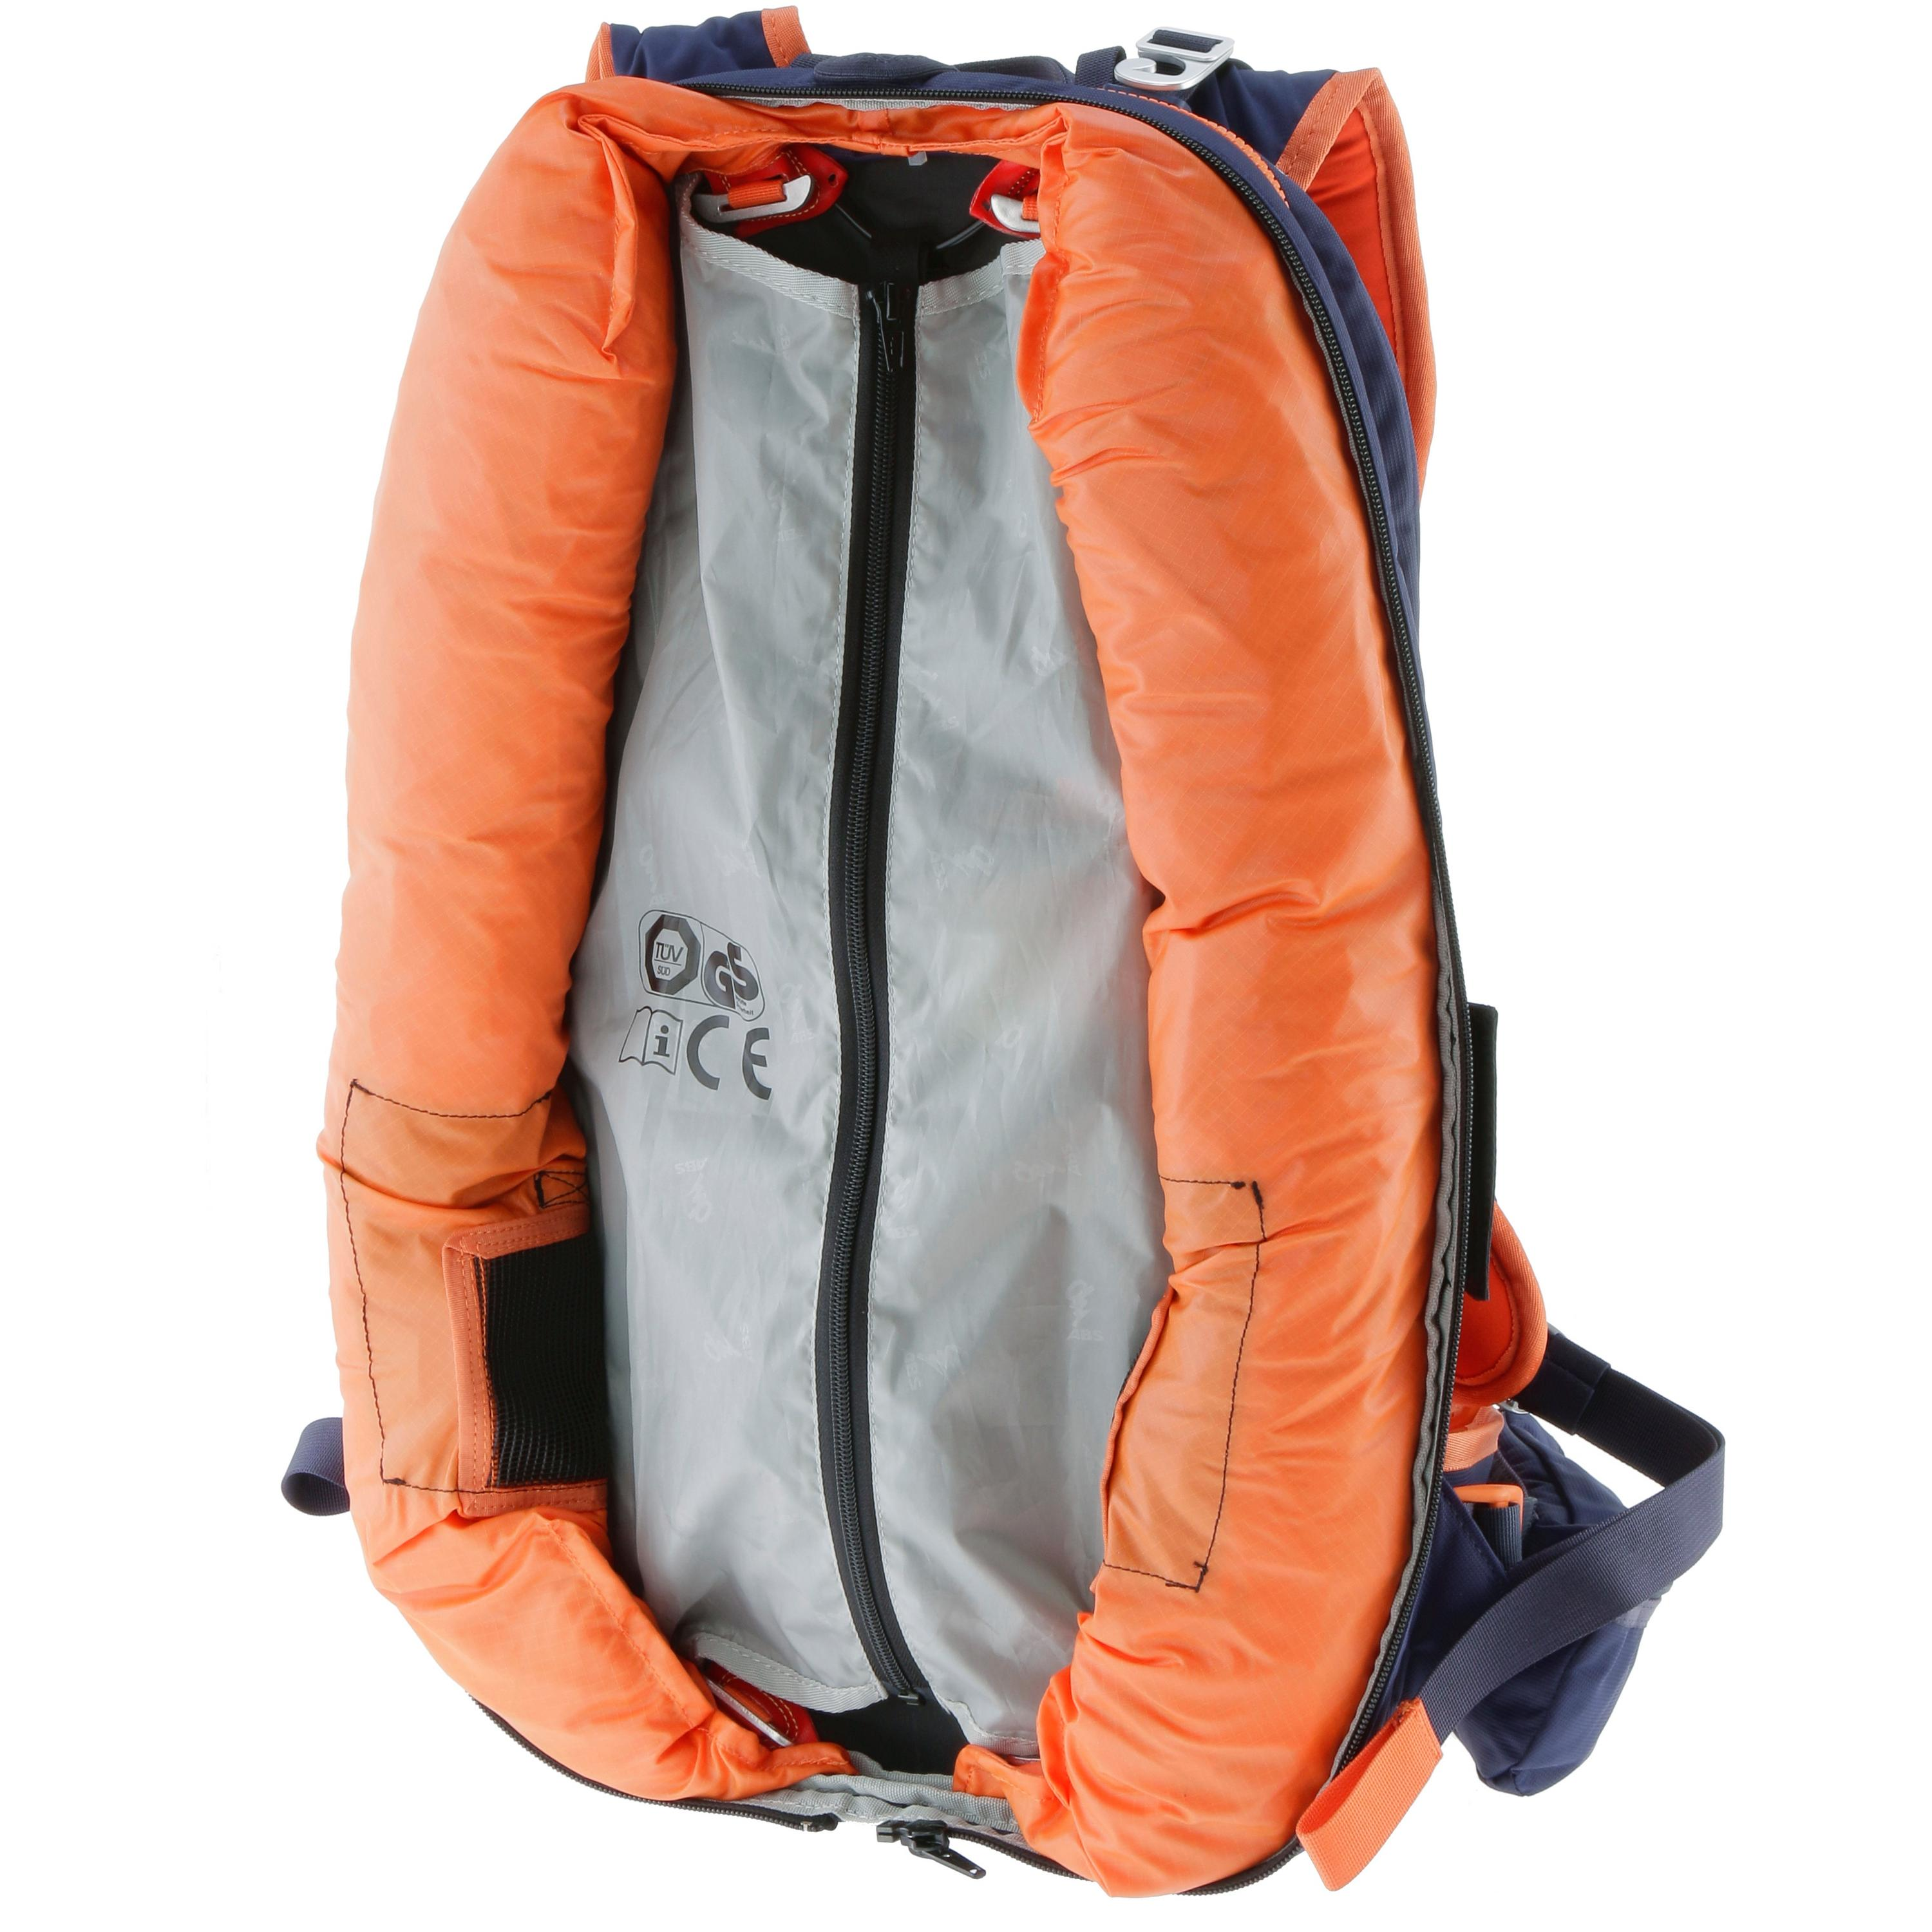 Image of ABS P.RIDE Base Unit Lawinenrucksack